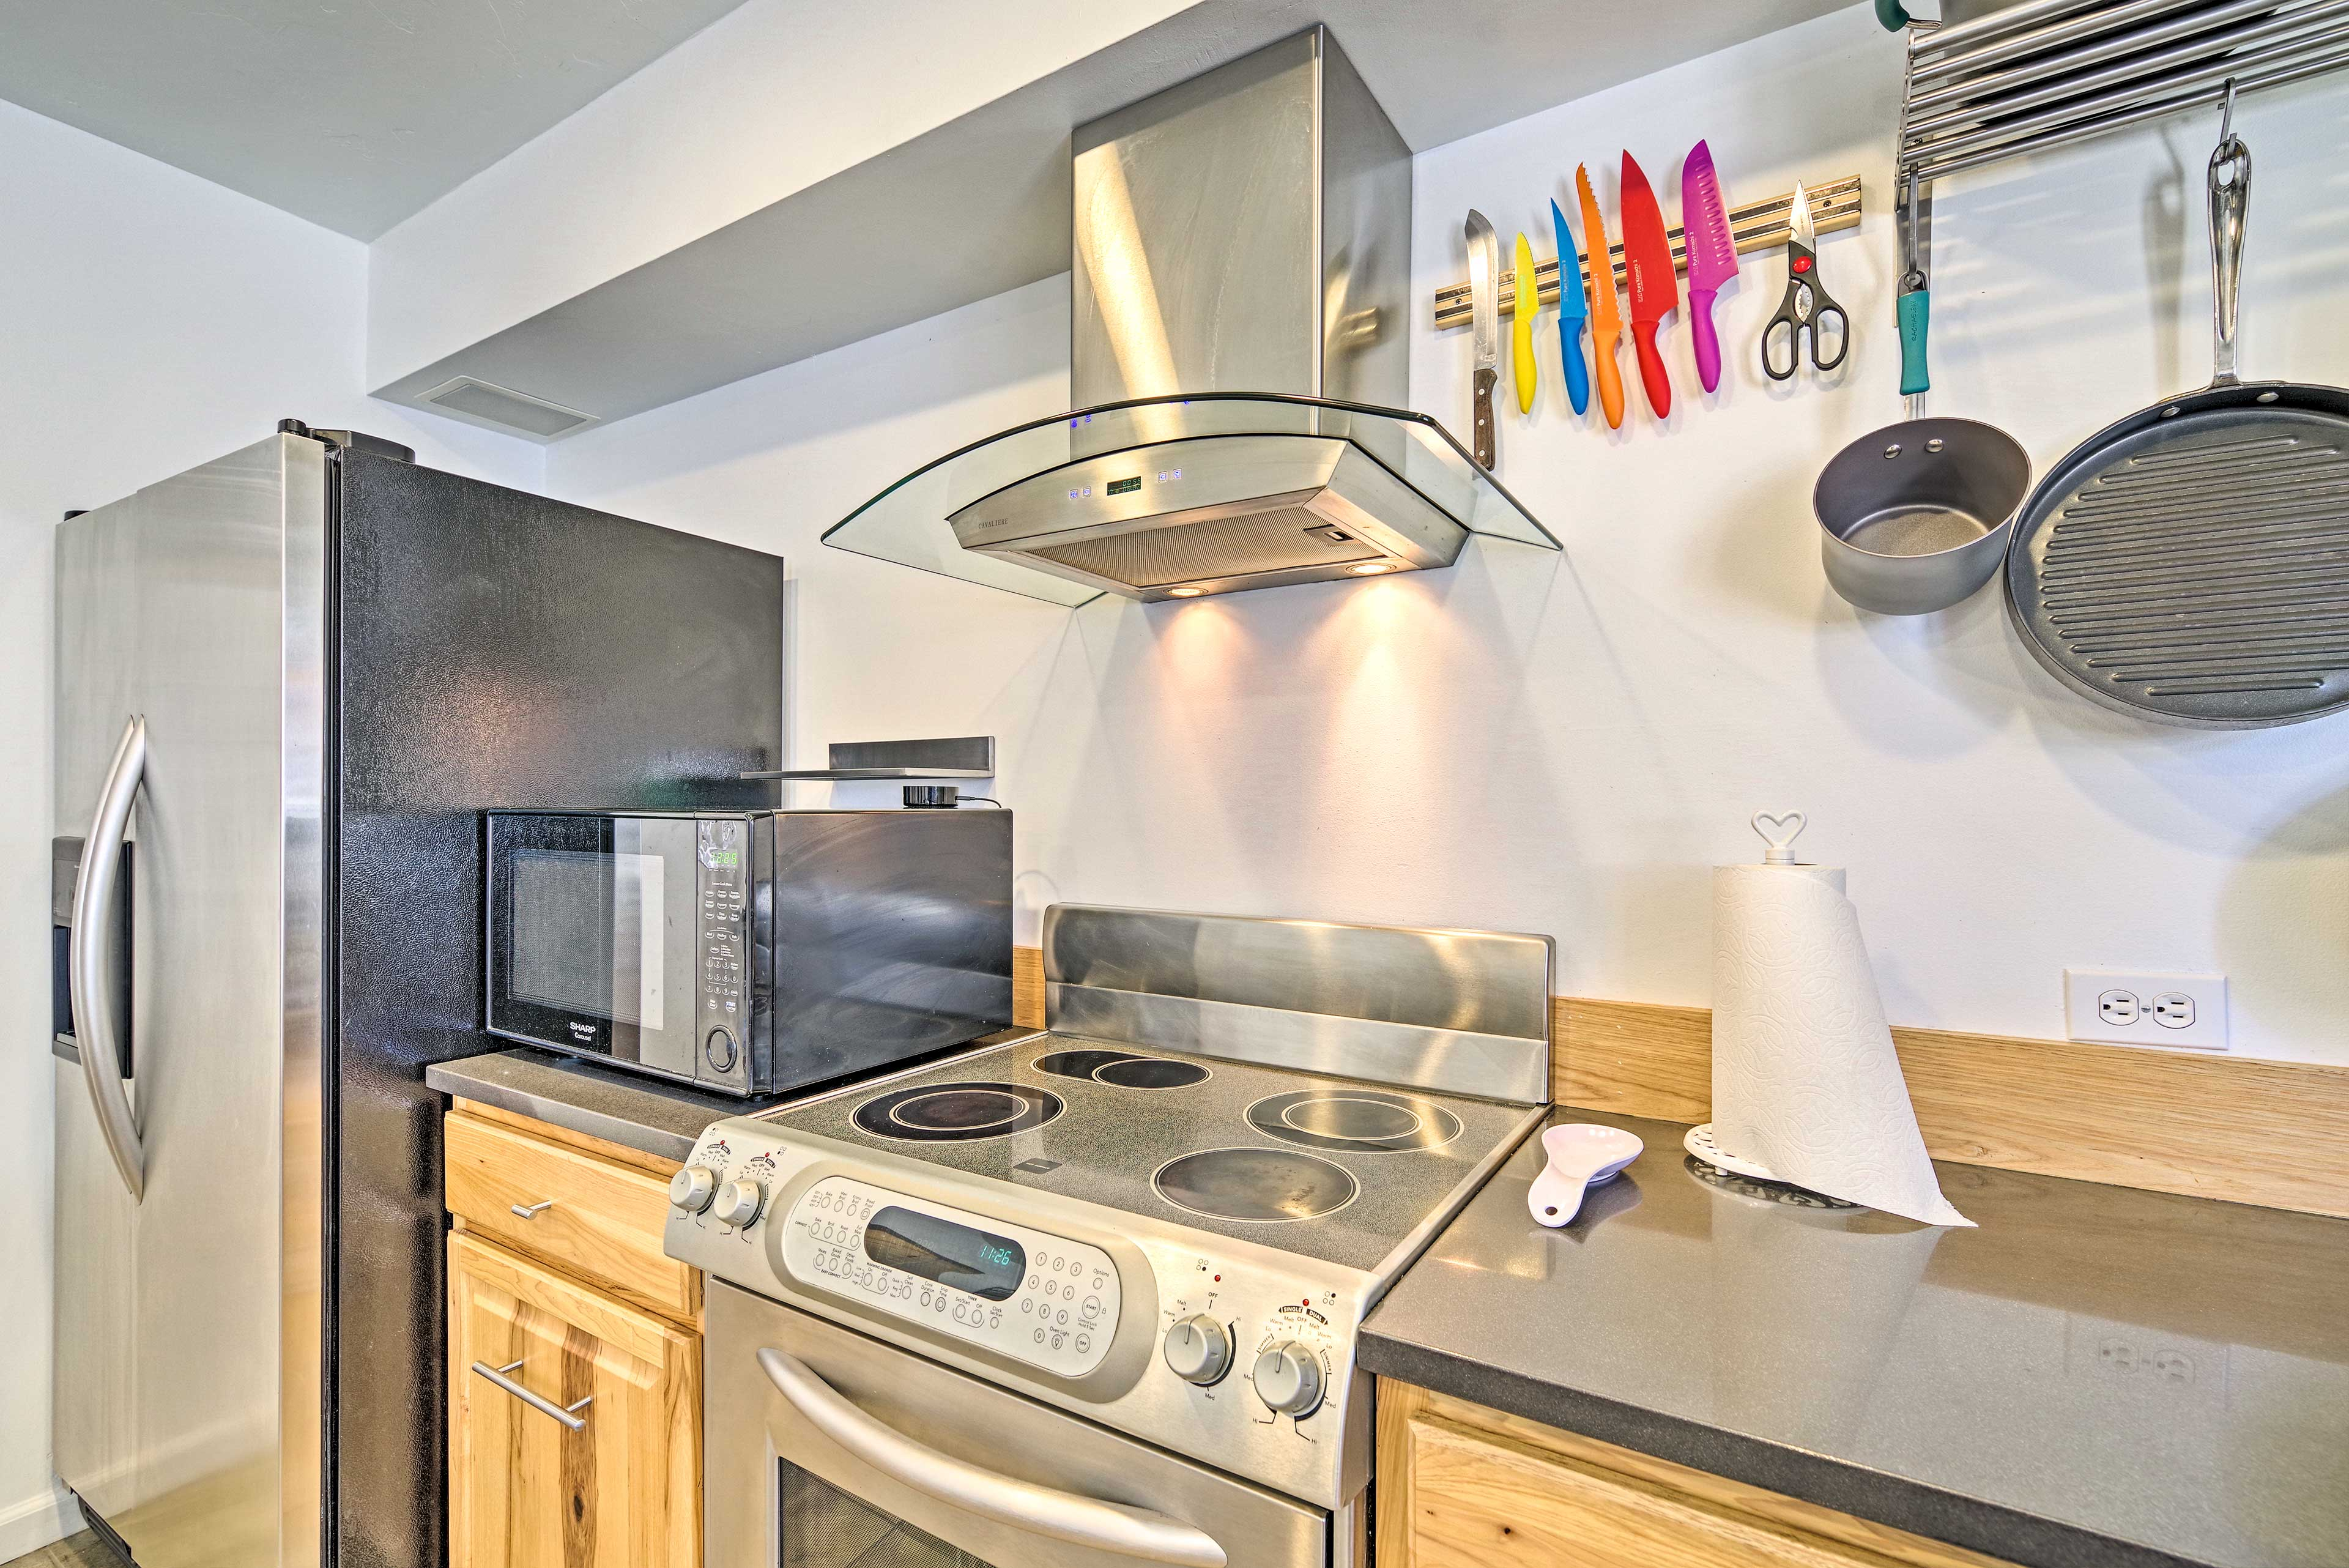 Stainless steel appliances complement the updated kitchen.